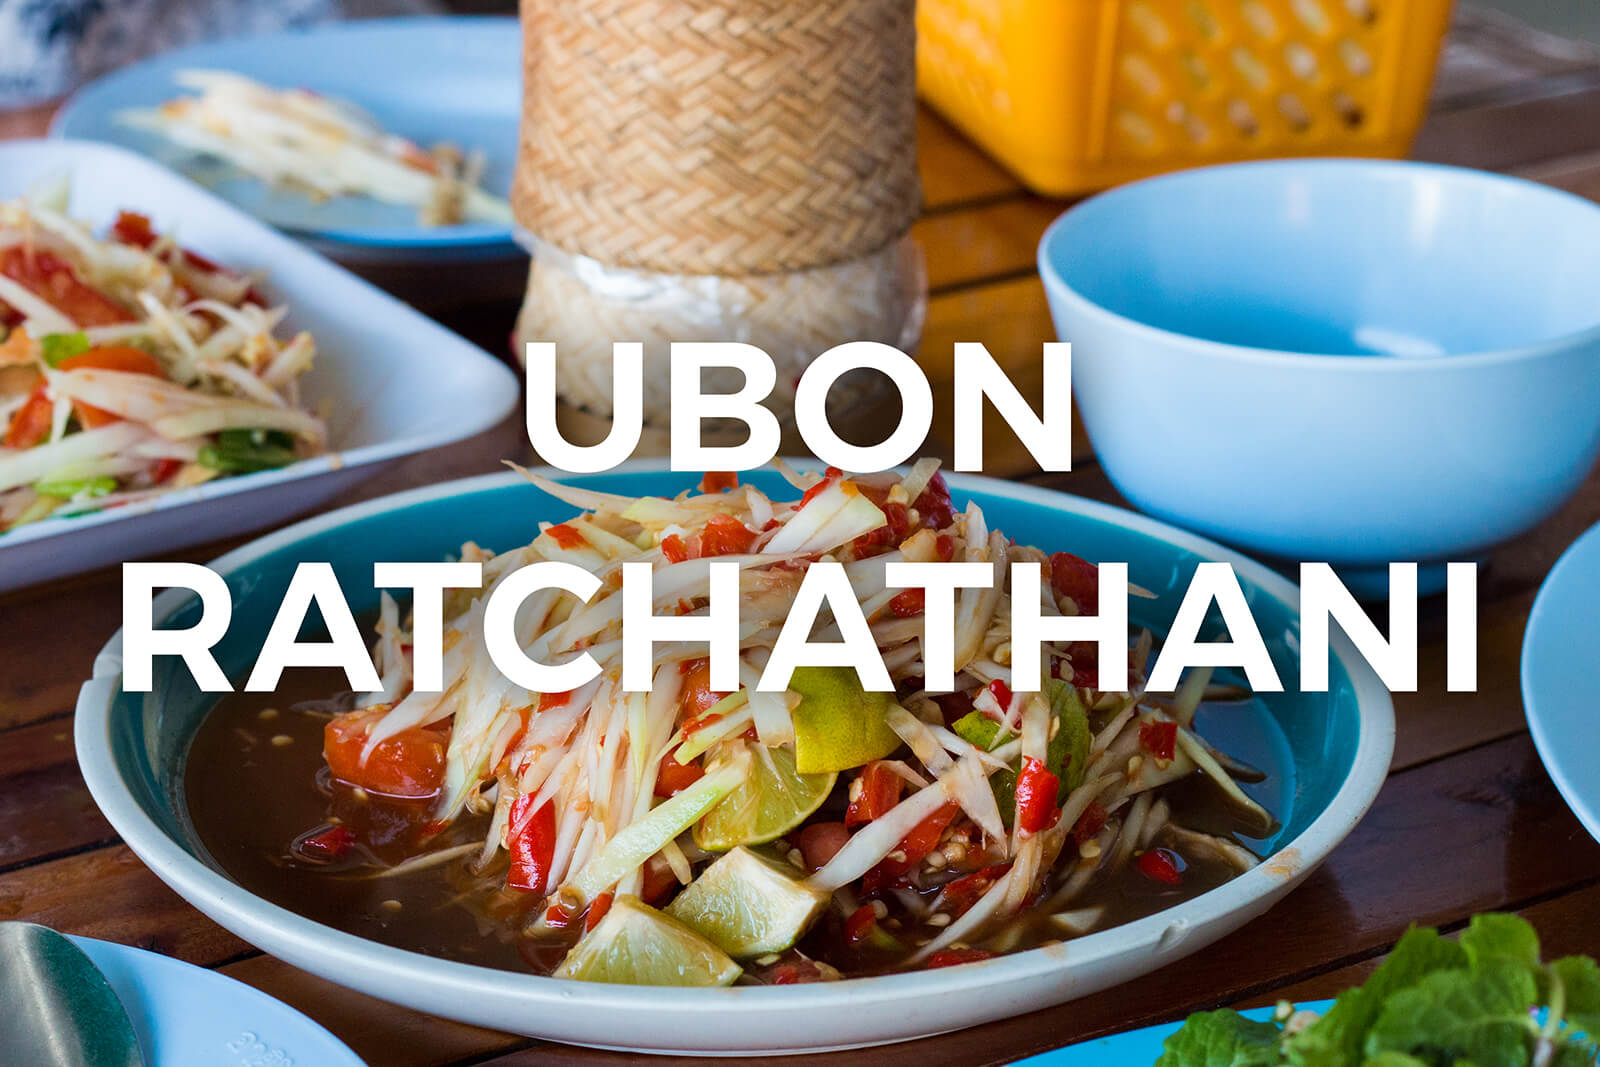 Ubon Ratchathani restaurants